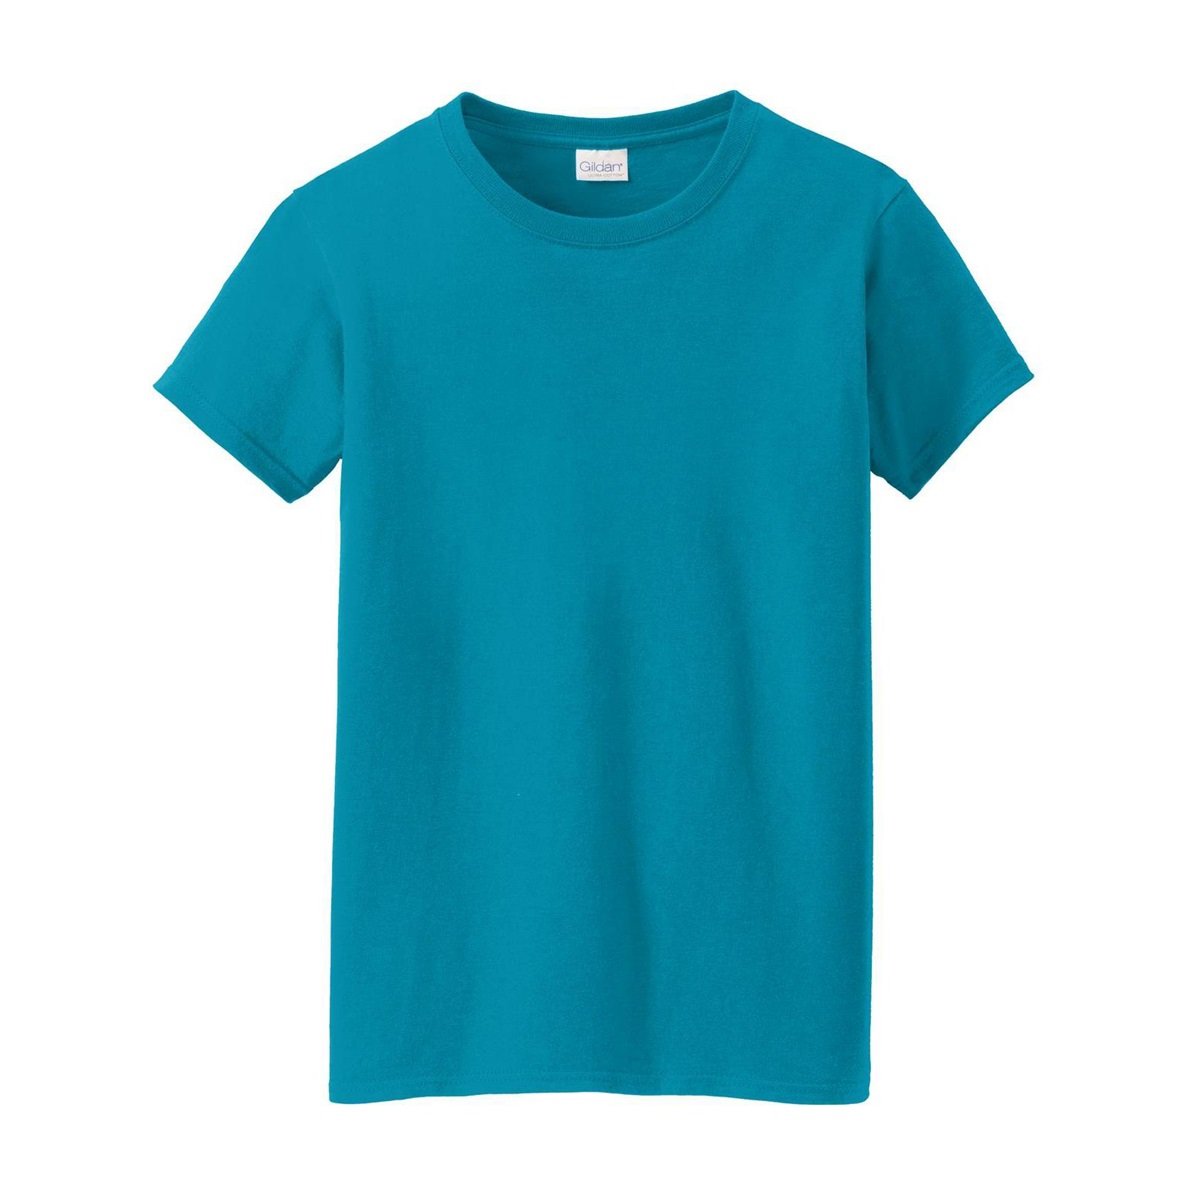 Canada's custom t-shirt printing experts. We offer free shipping and 7-day rush turnaround. Create personalized t-shirts and apparel for any occasion. Design your own t-shirt today!